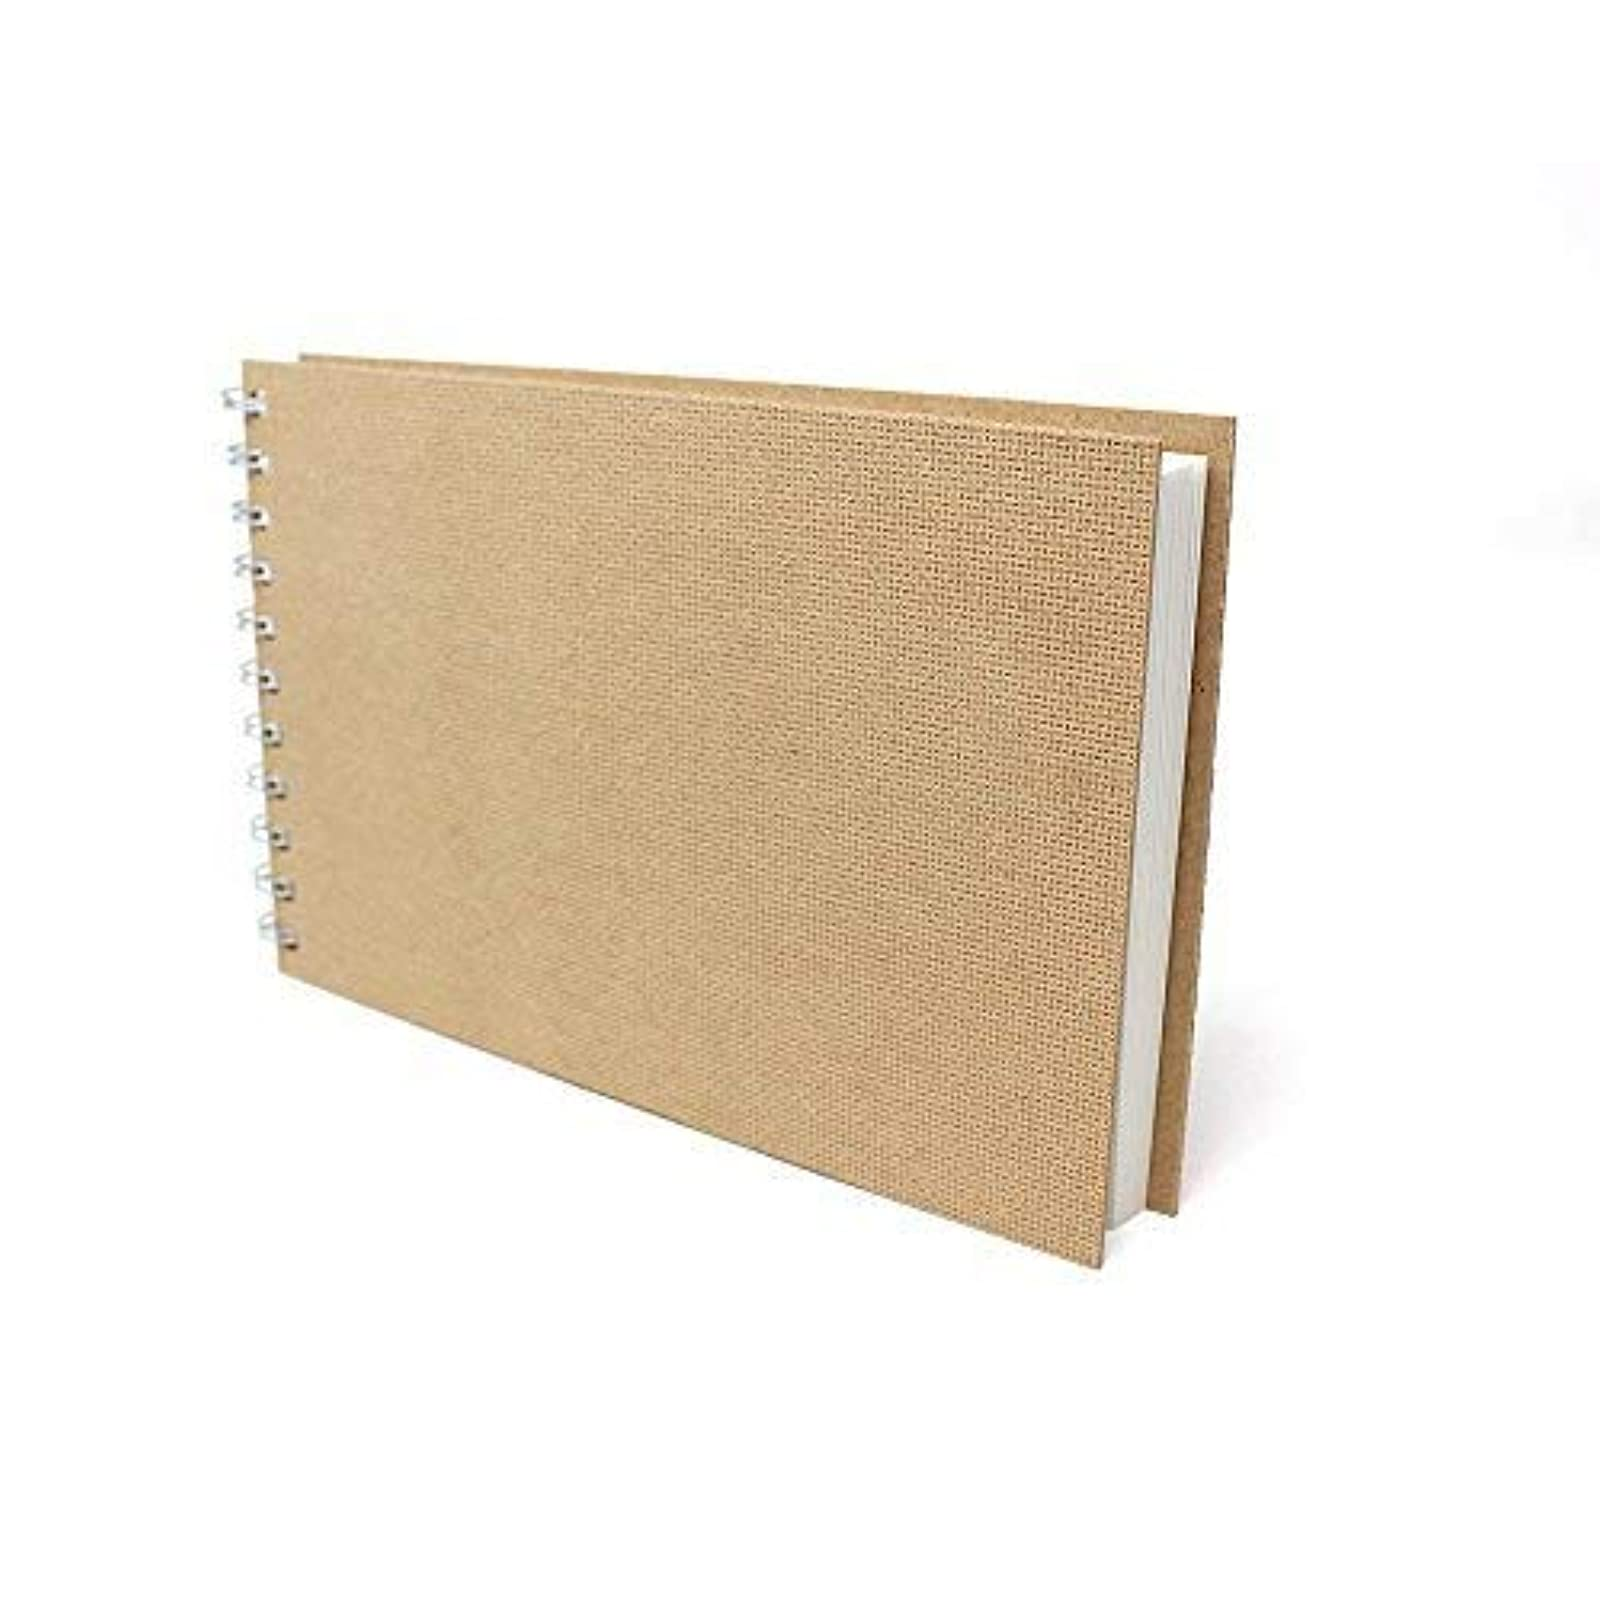 Artway Enviro Spiral Sketch book // Drawing Pad 100/% Recycled Hardcover Sketchbook 14 x 11 Landscape Recycled 170gsm // 105lb